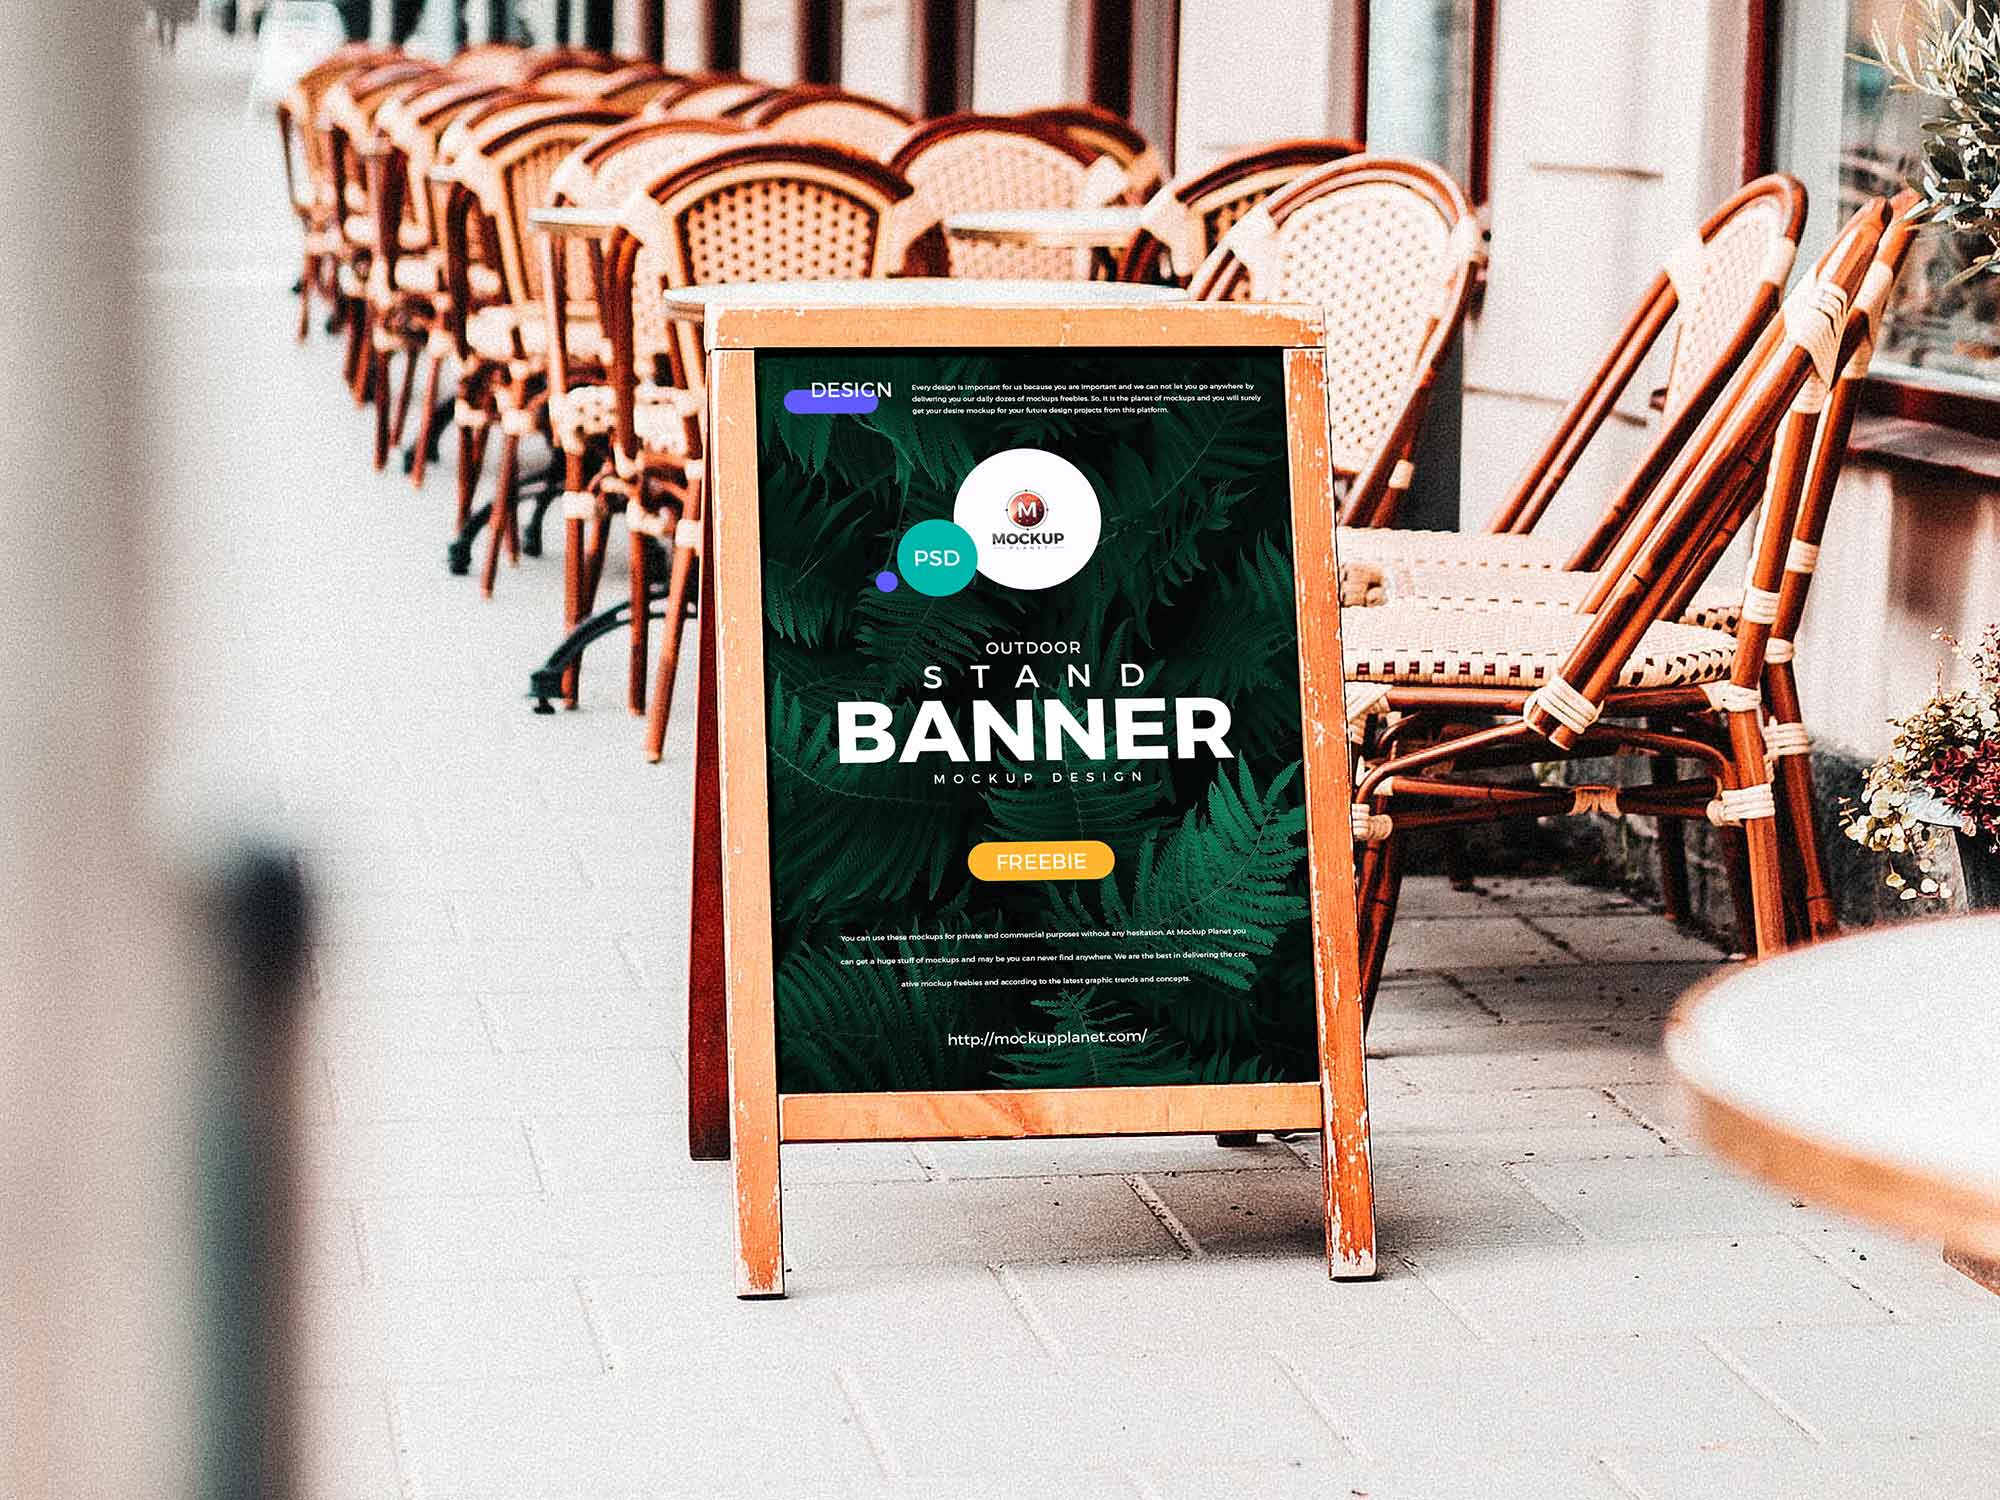 Outdoor Stand Banner Mockup